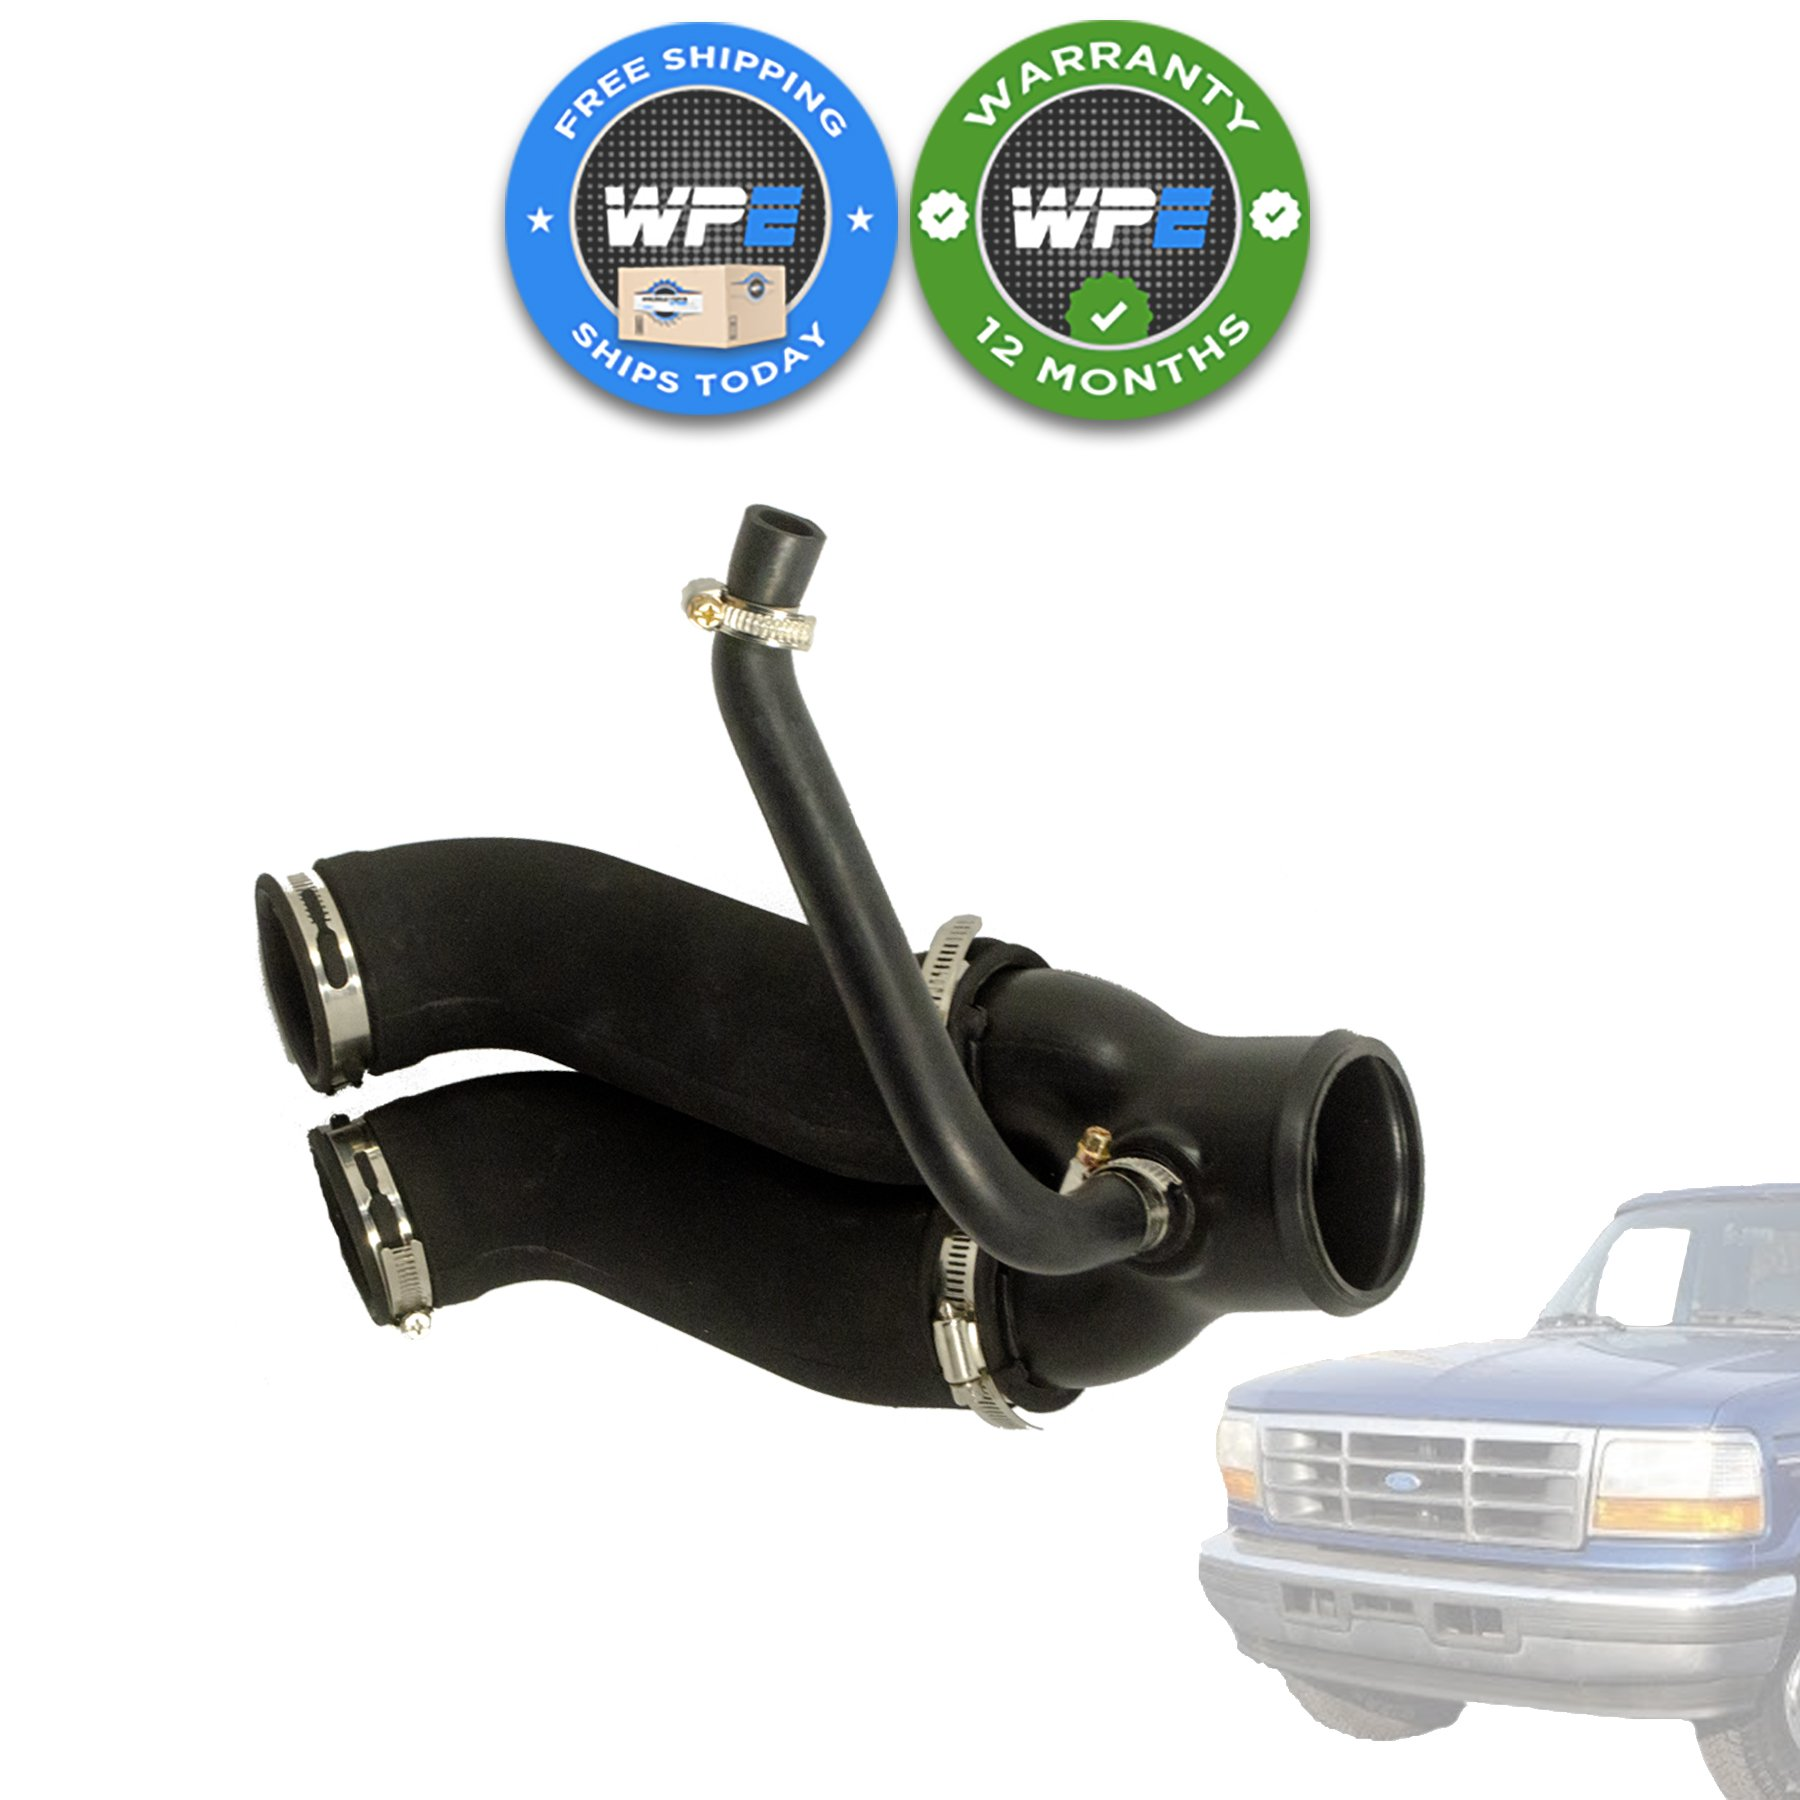 SCITOO F6TZ-9B659-AD Engine Air Intake Hose Fits for 1994 1995 1996 F-ord Bronco 1994 1995 1996 F-ord F-150 1994 1995 1996 1997 F-ord F-250 1994 1995 1996 1997 F-ord F-350